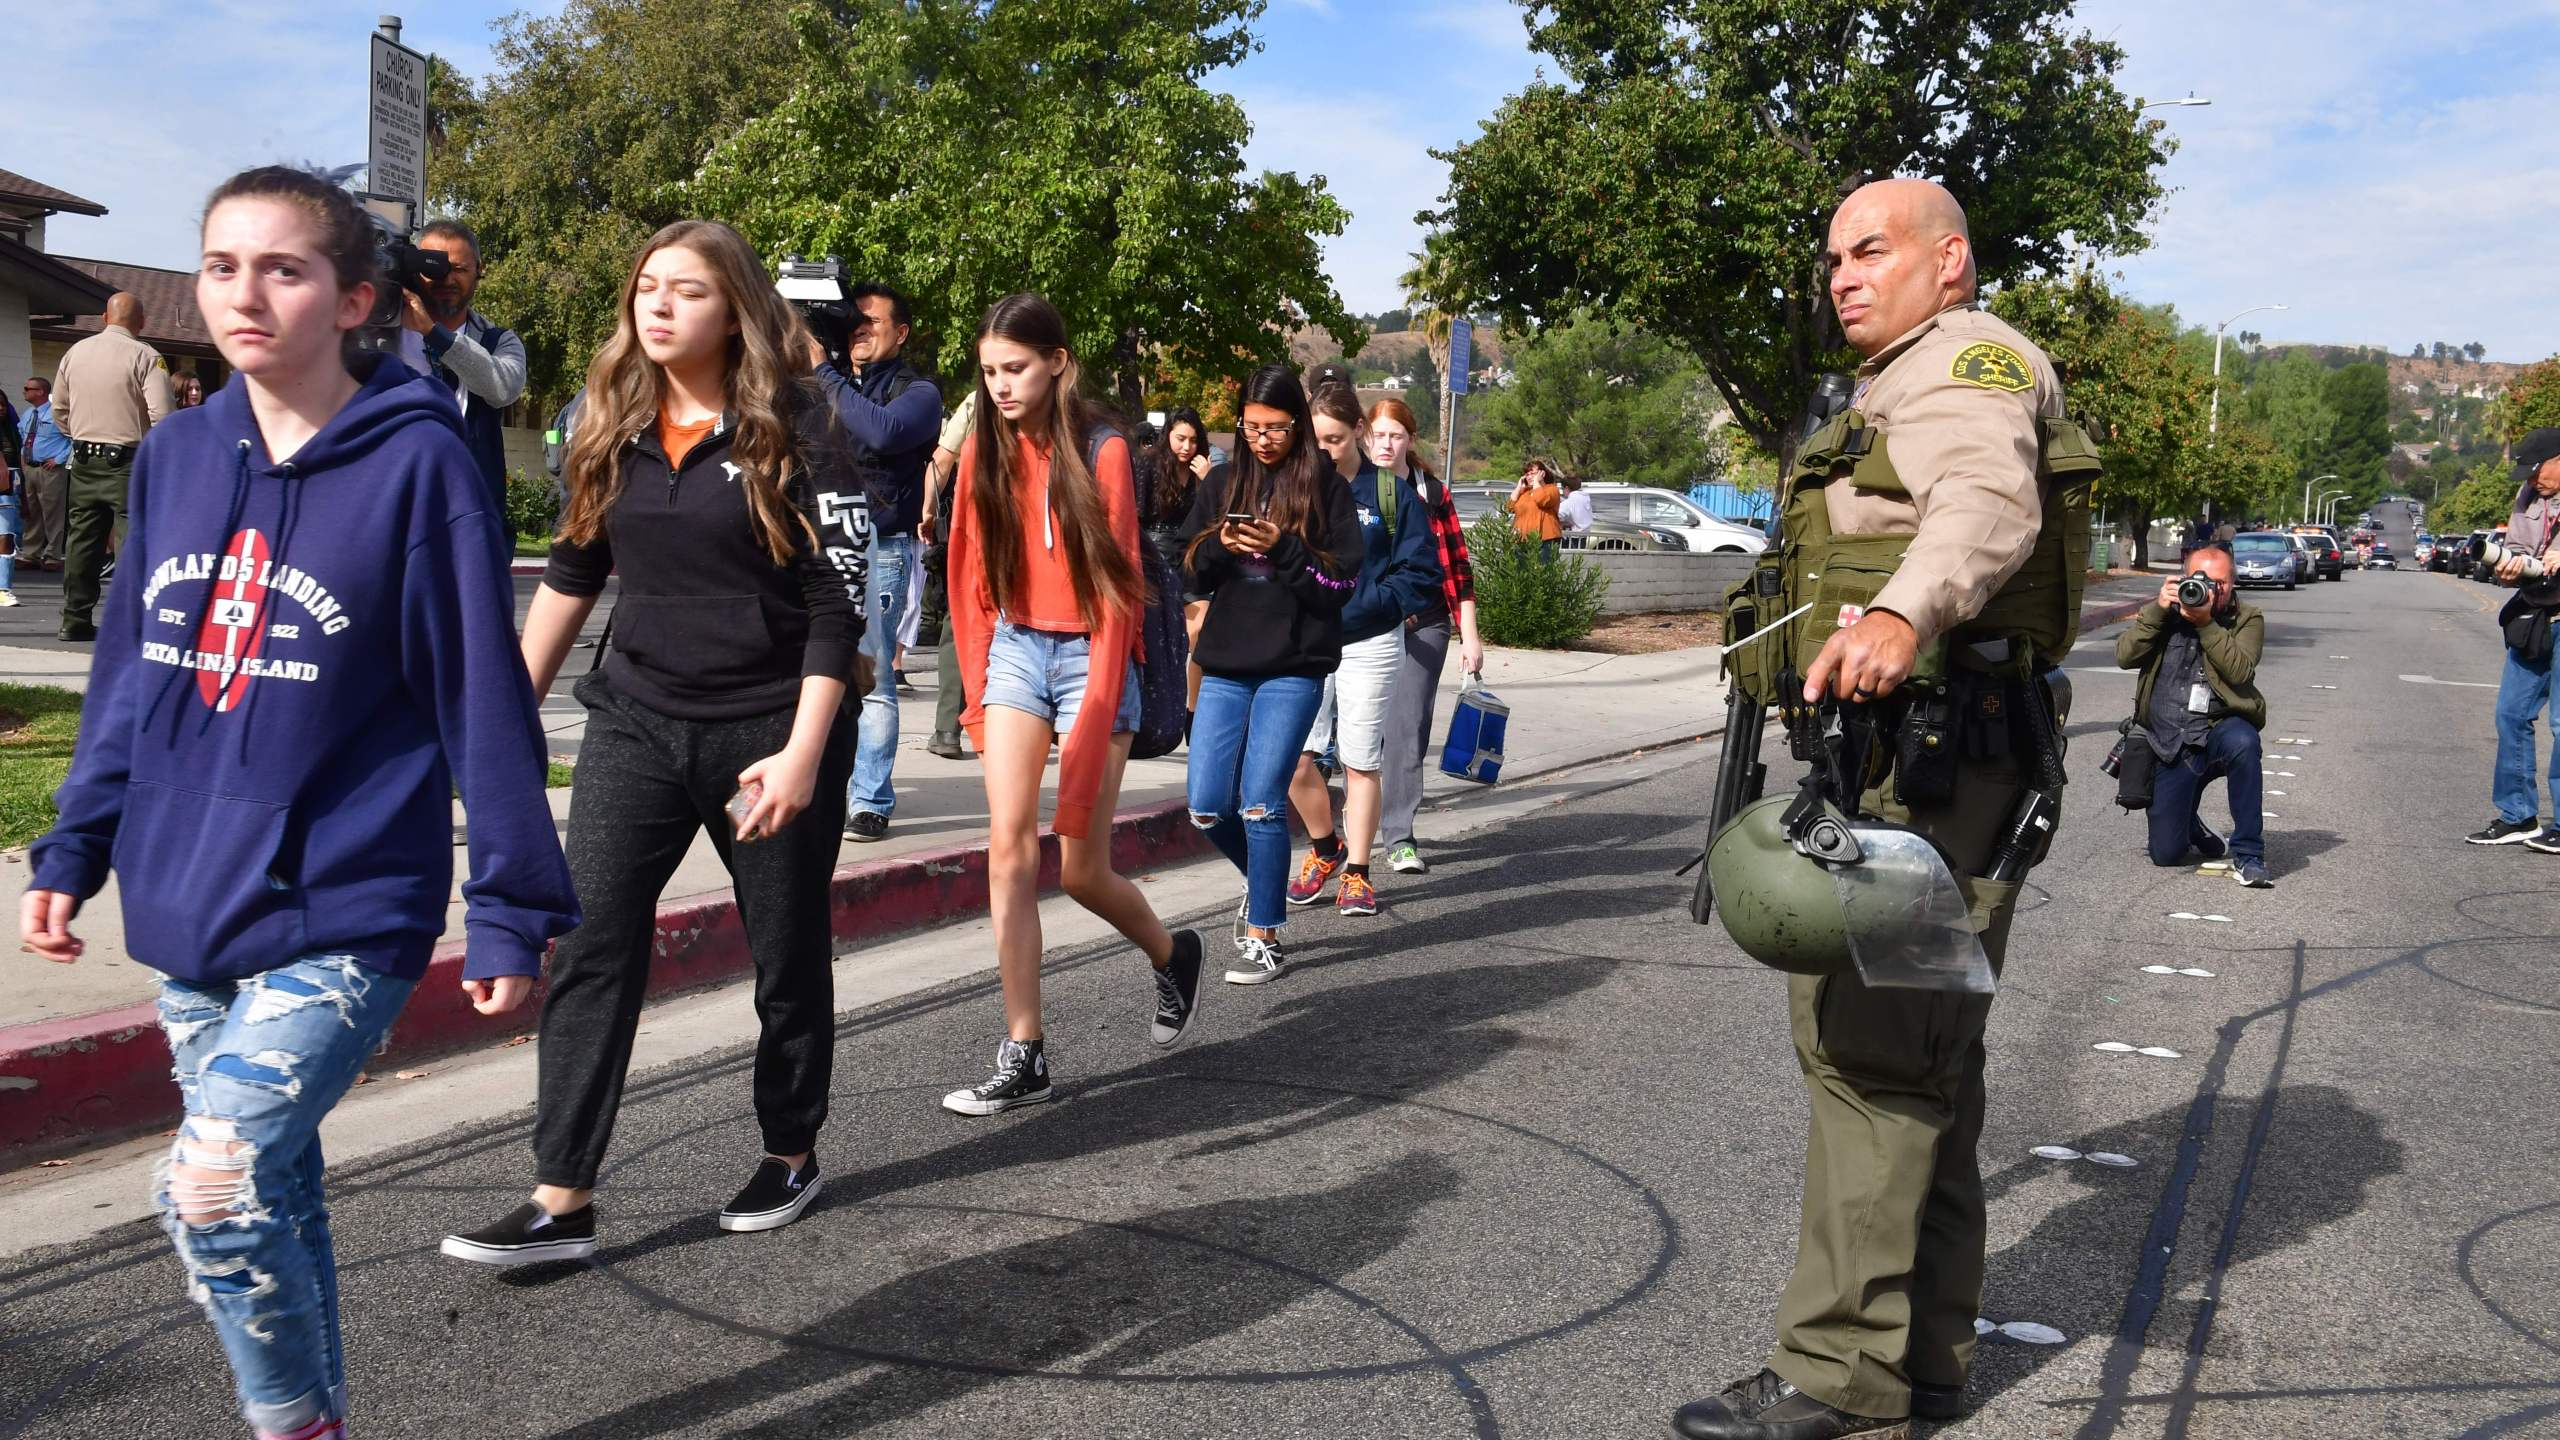 Students line up after a shooting at Saugus High School in Santa Clarita on Nov. 14, 2019. (Credit: FREDERIC J. BROWN/AFP via Getty Images)